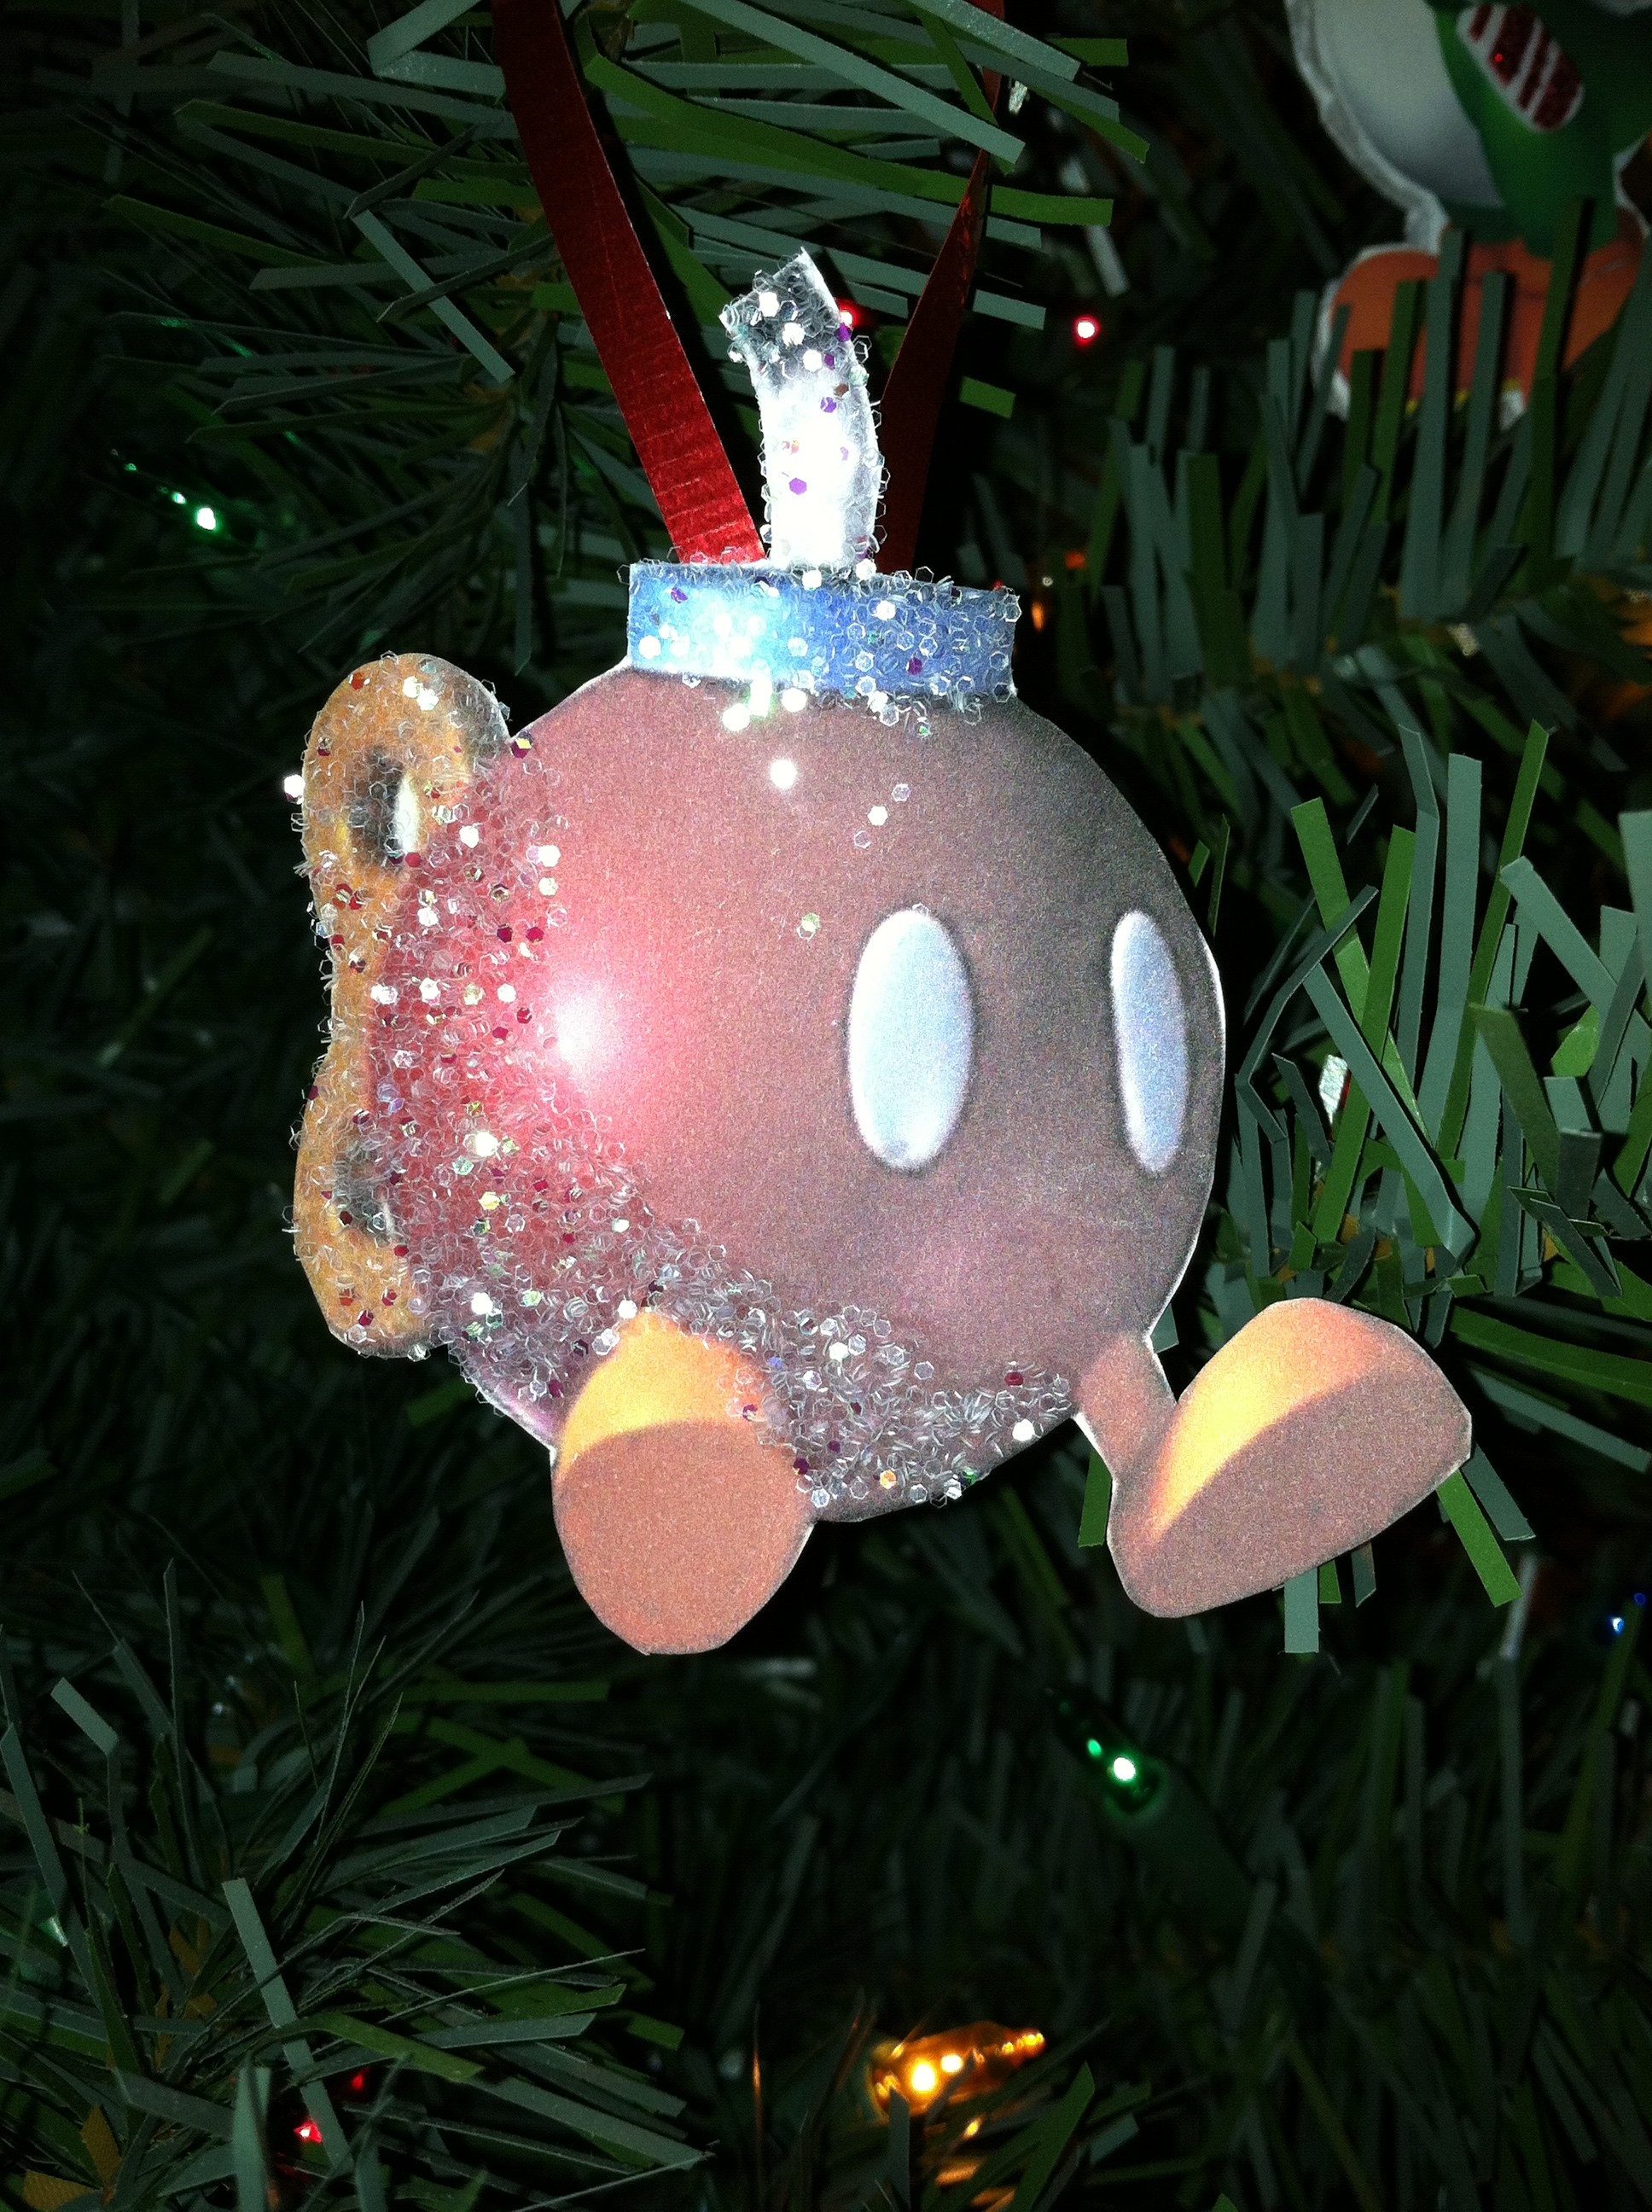 Nintendo Tree, Nintendo Tree, How Flammable You Must Be! - Keen and ...